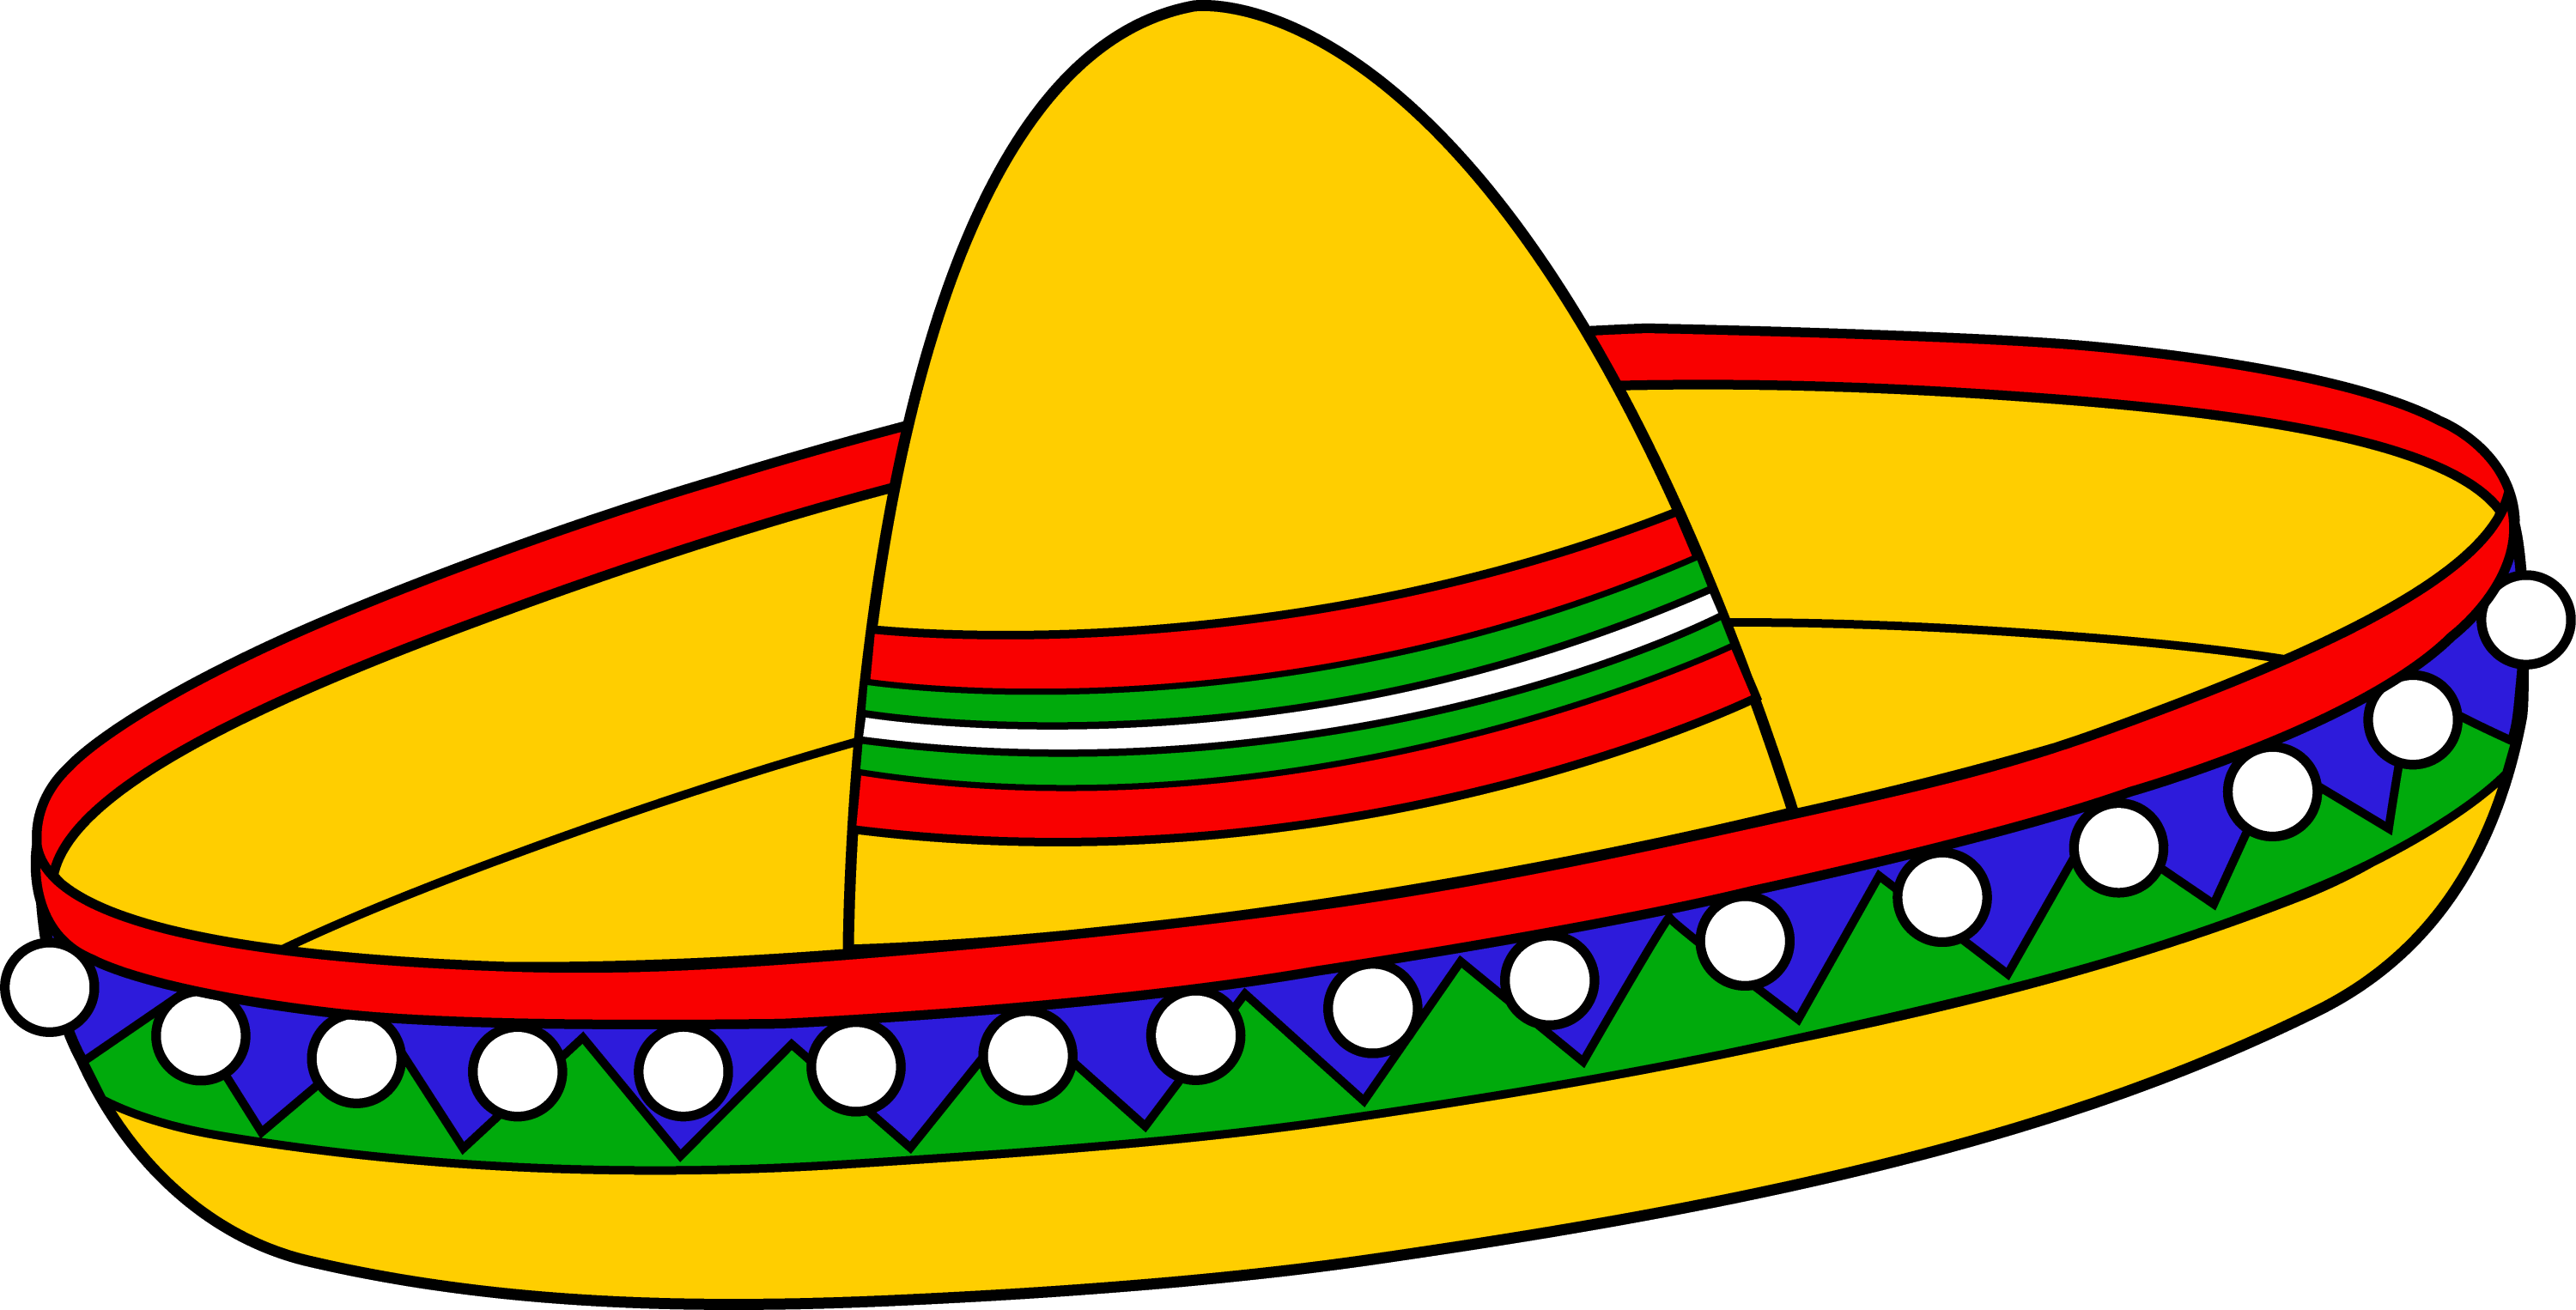 Colorful Mexican Sombrero Hat Free Clip Art